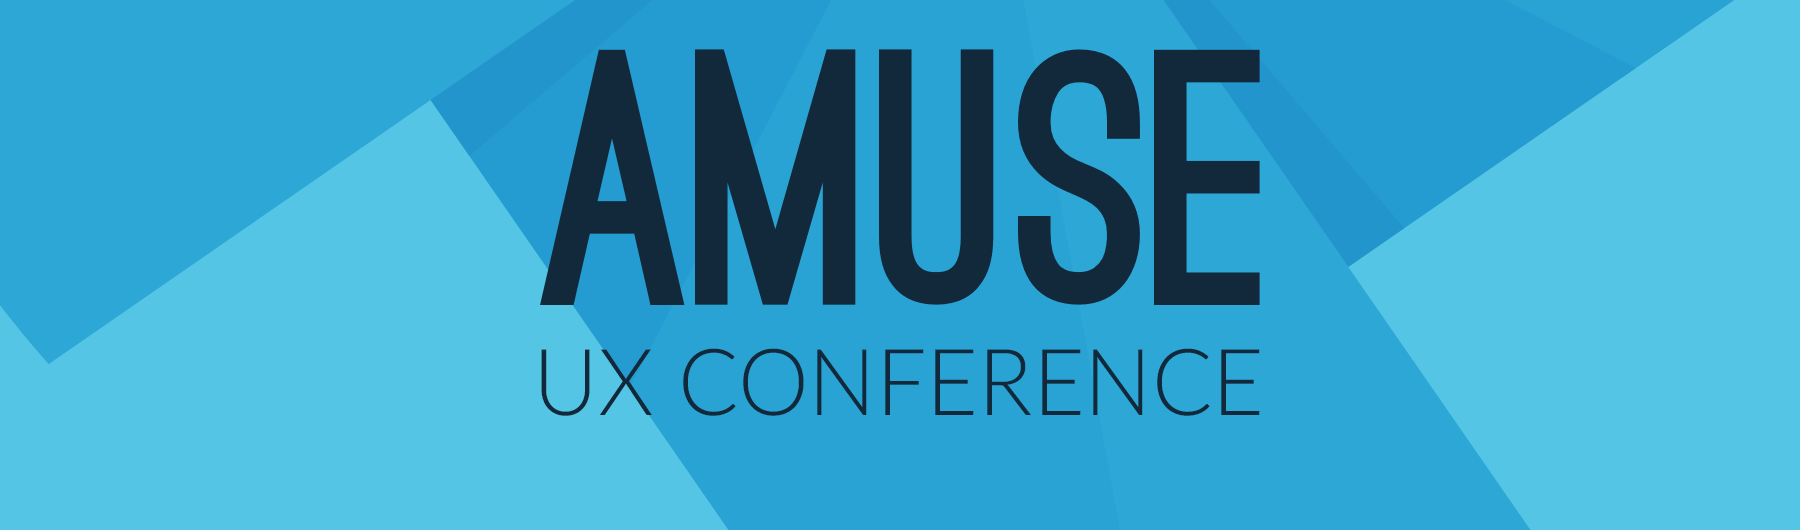 Amuse UX Conference 2018